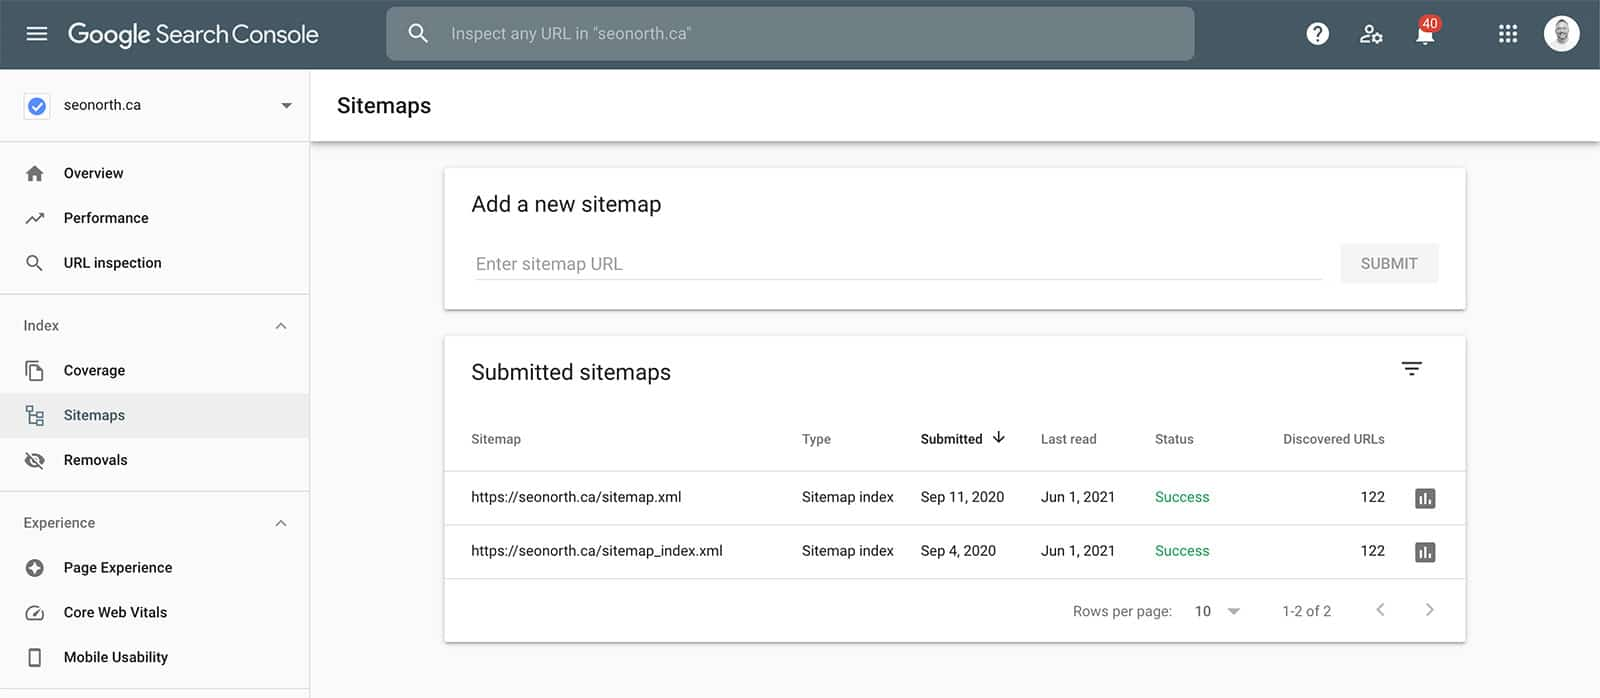 Submit your sitemap to GSC